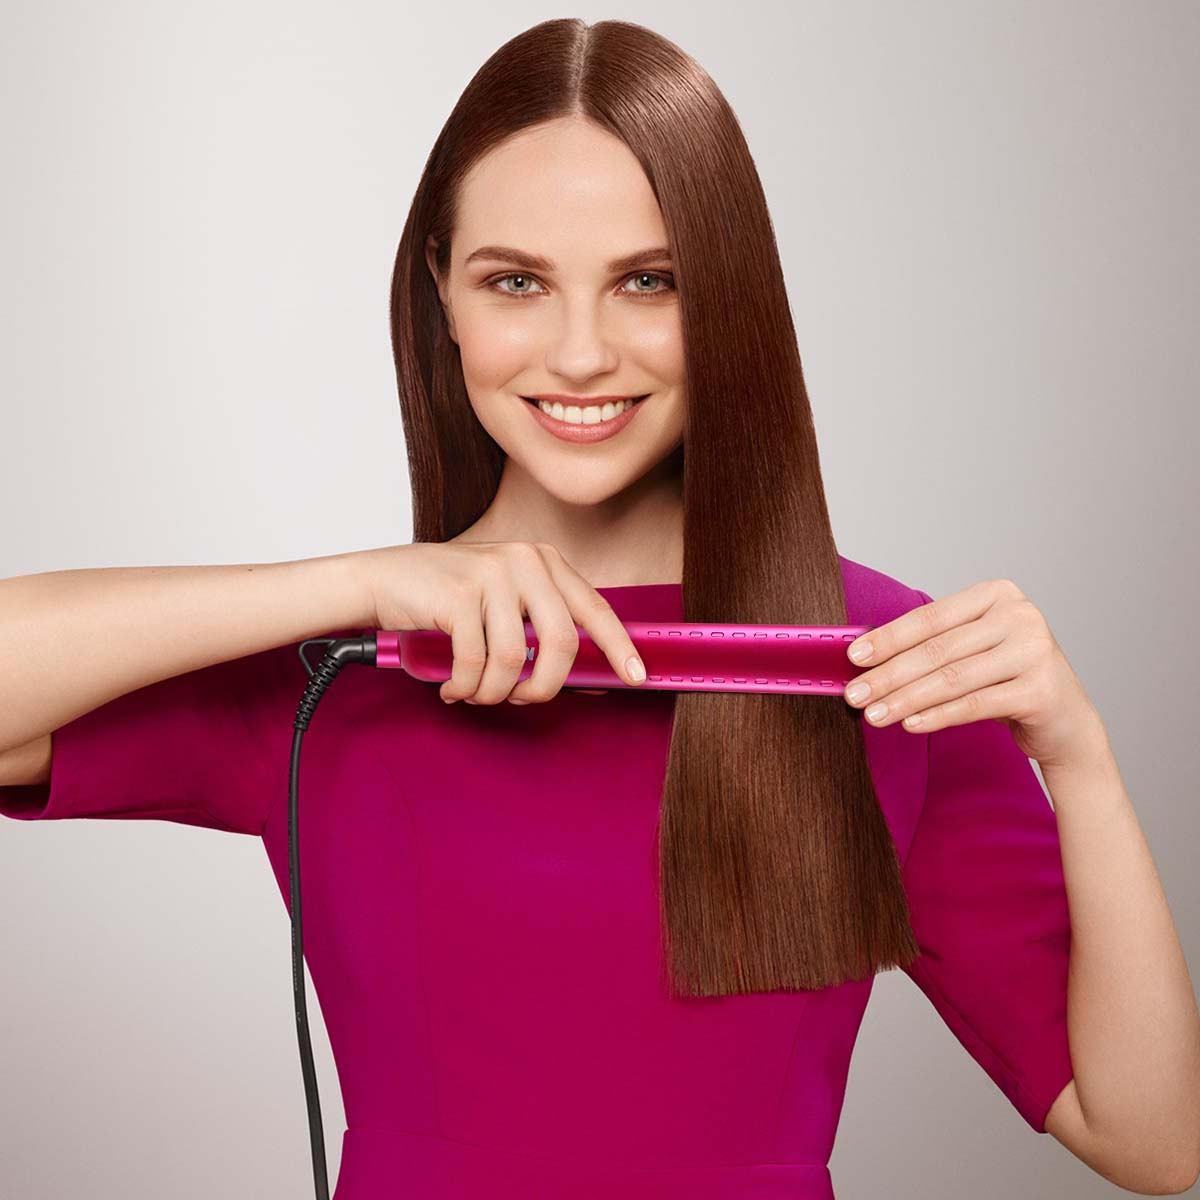 Solustre Hair Straightener Curler Ceramic Plates Flat Iron Hair Styling Tools with Adjustable Temperature for All Hair Types